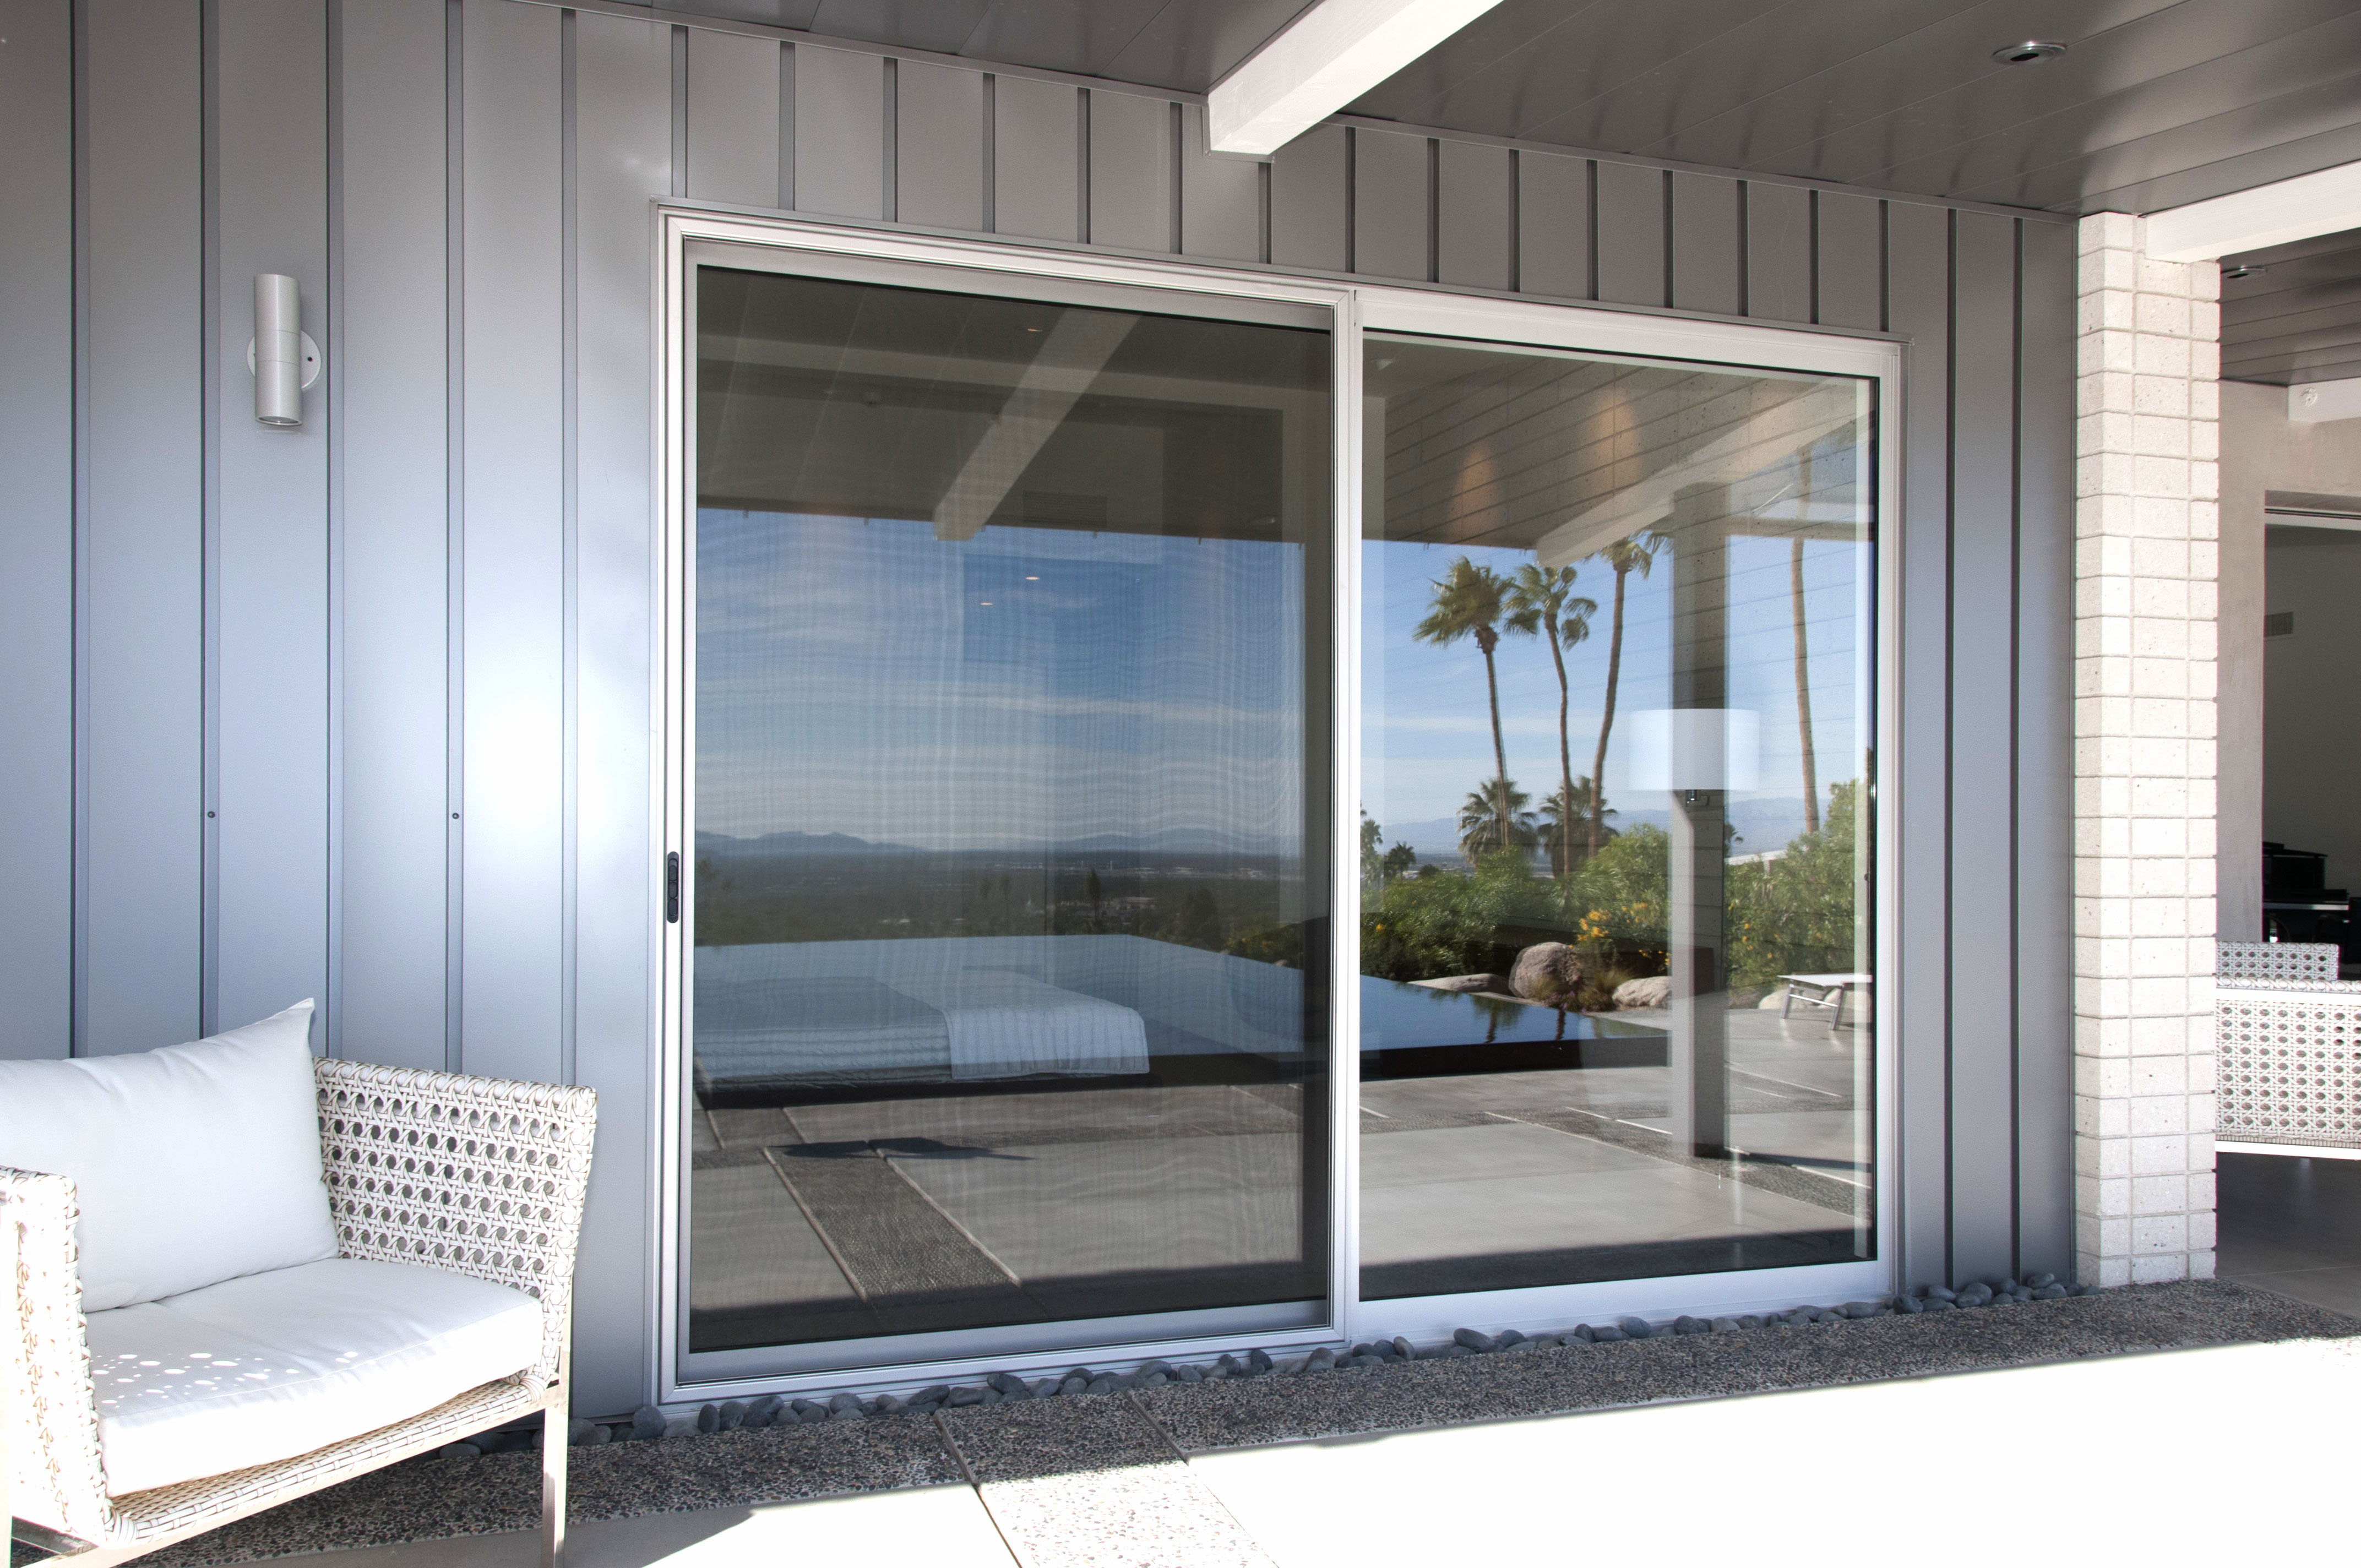 Mirrored Sliding Doors Create Beautiful Light Effects Inexpensively